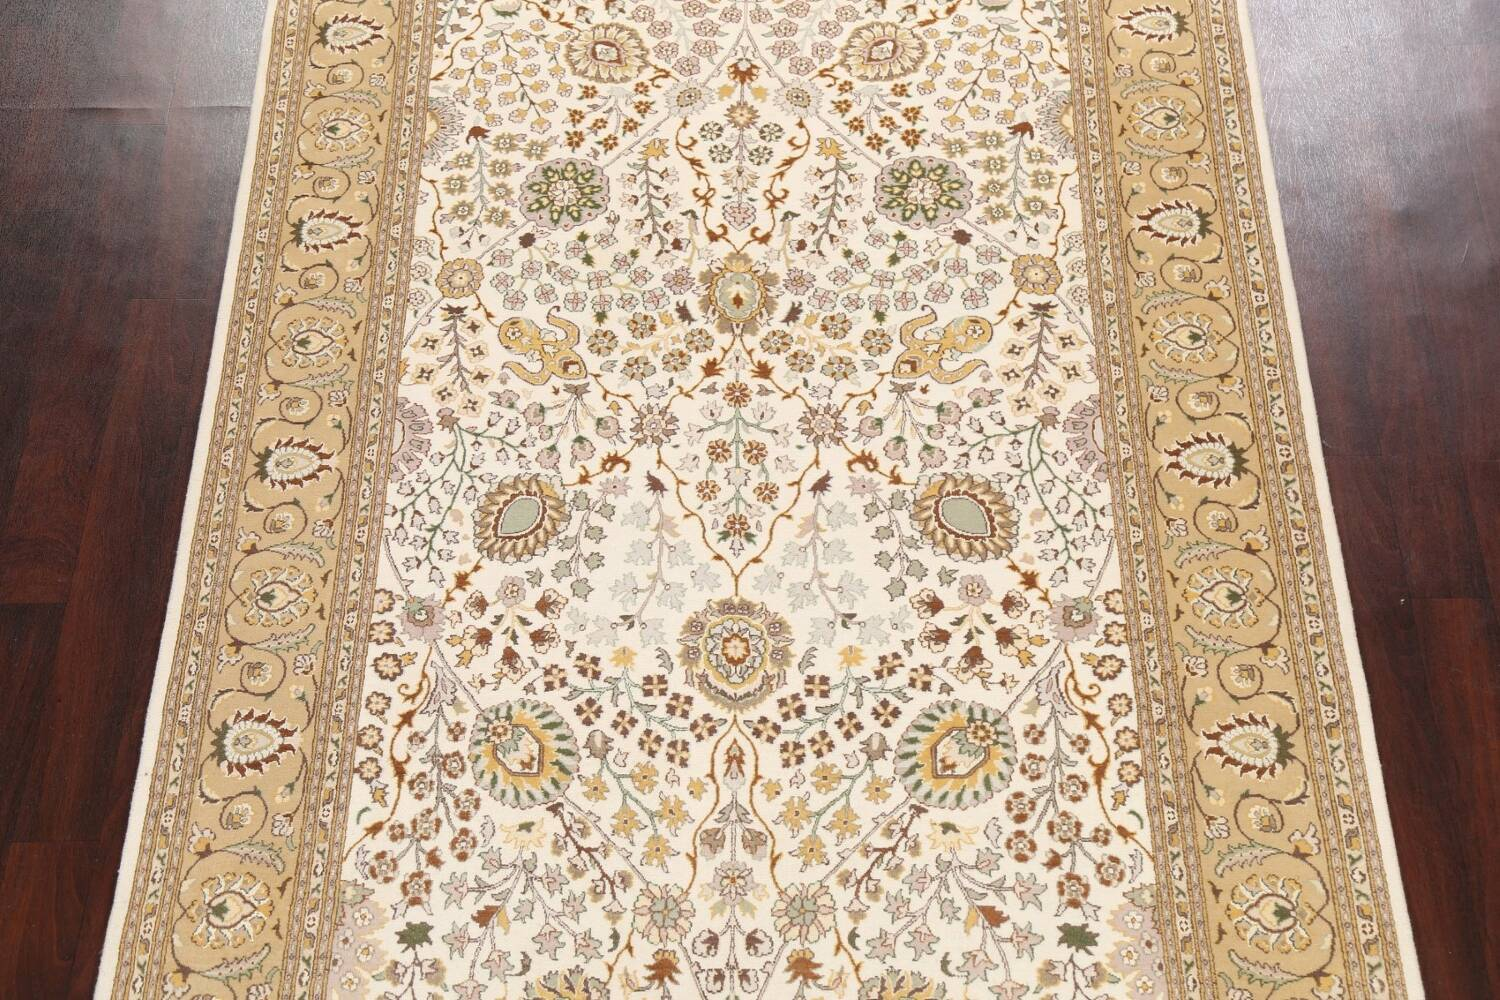 Vegetable Dye Floral Tabriz Oriental Area Rug 6x9 image 3